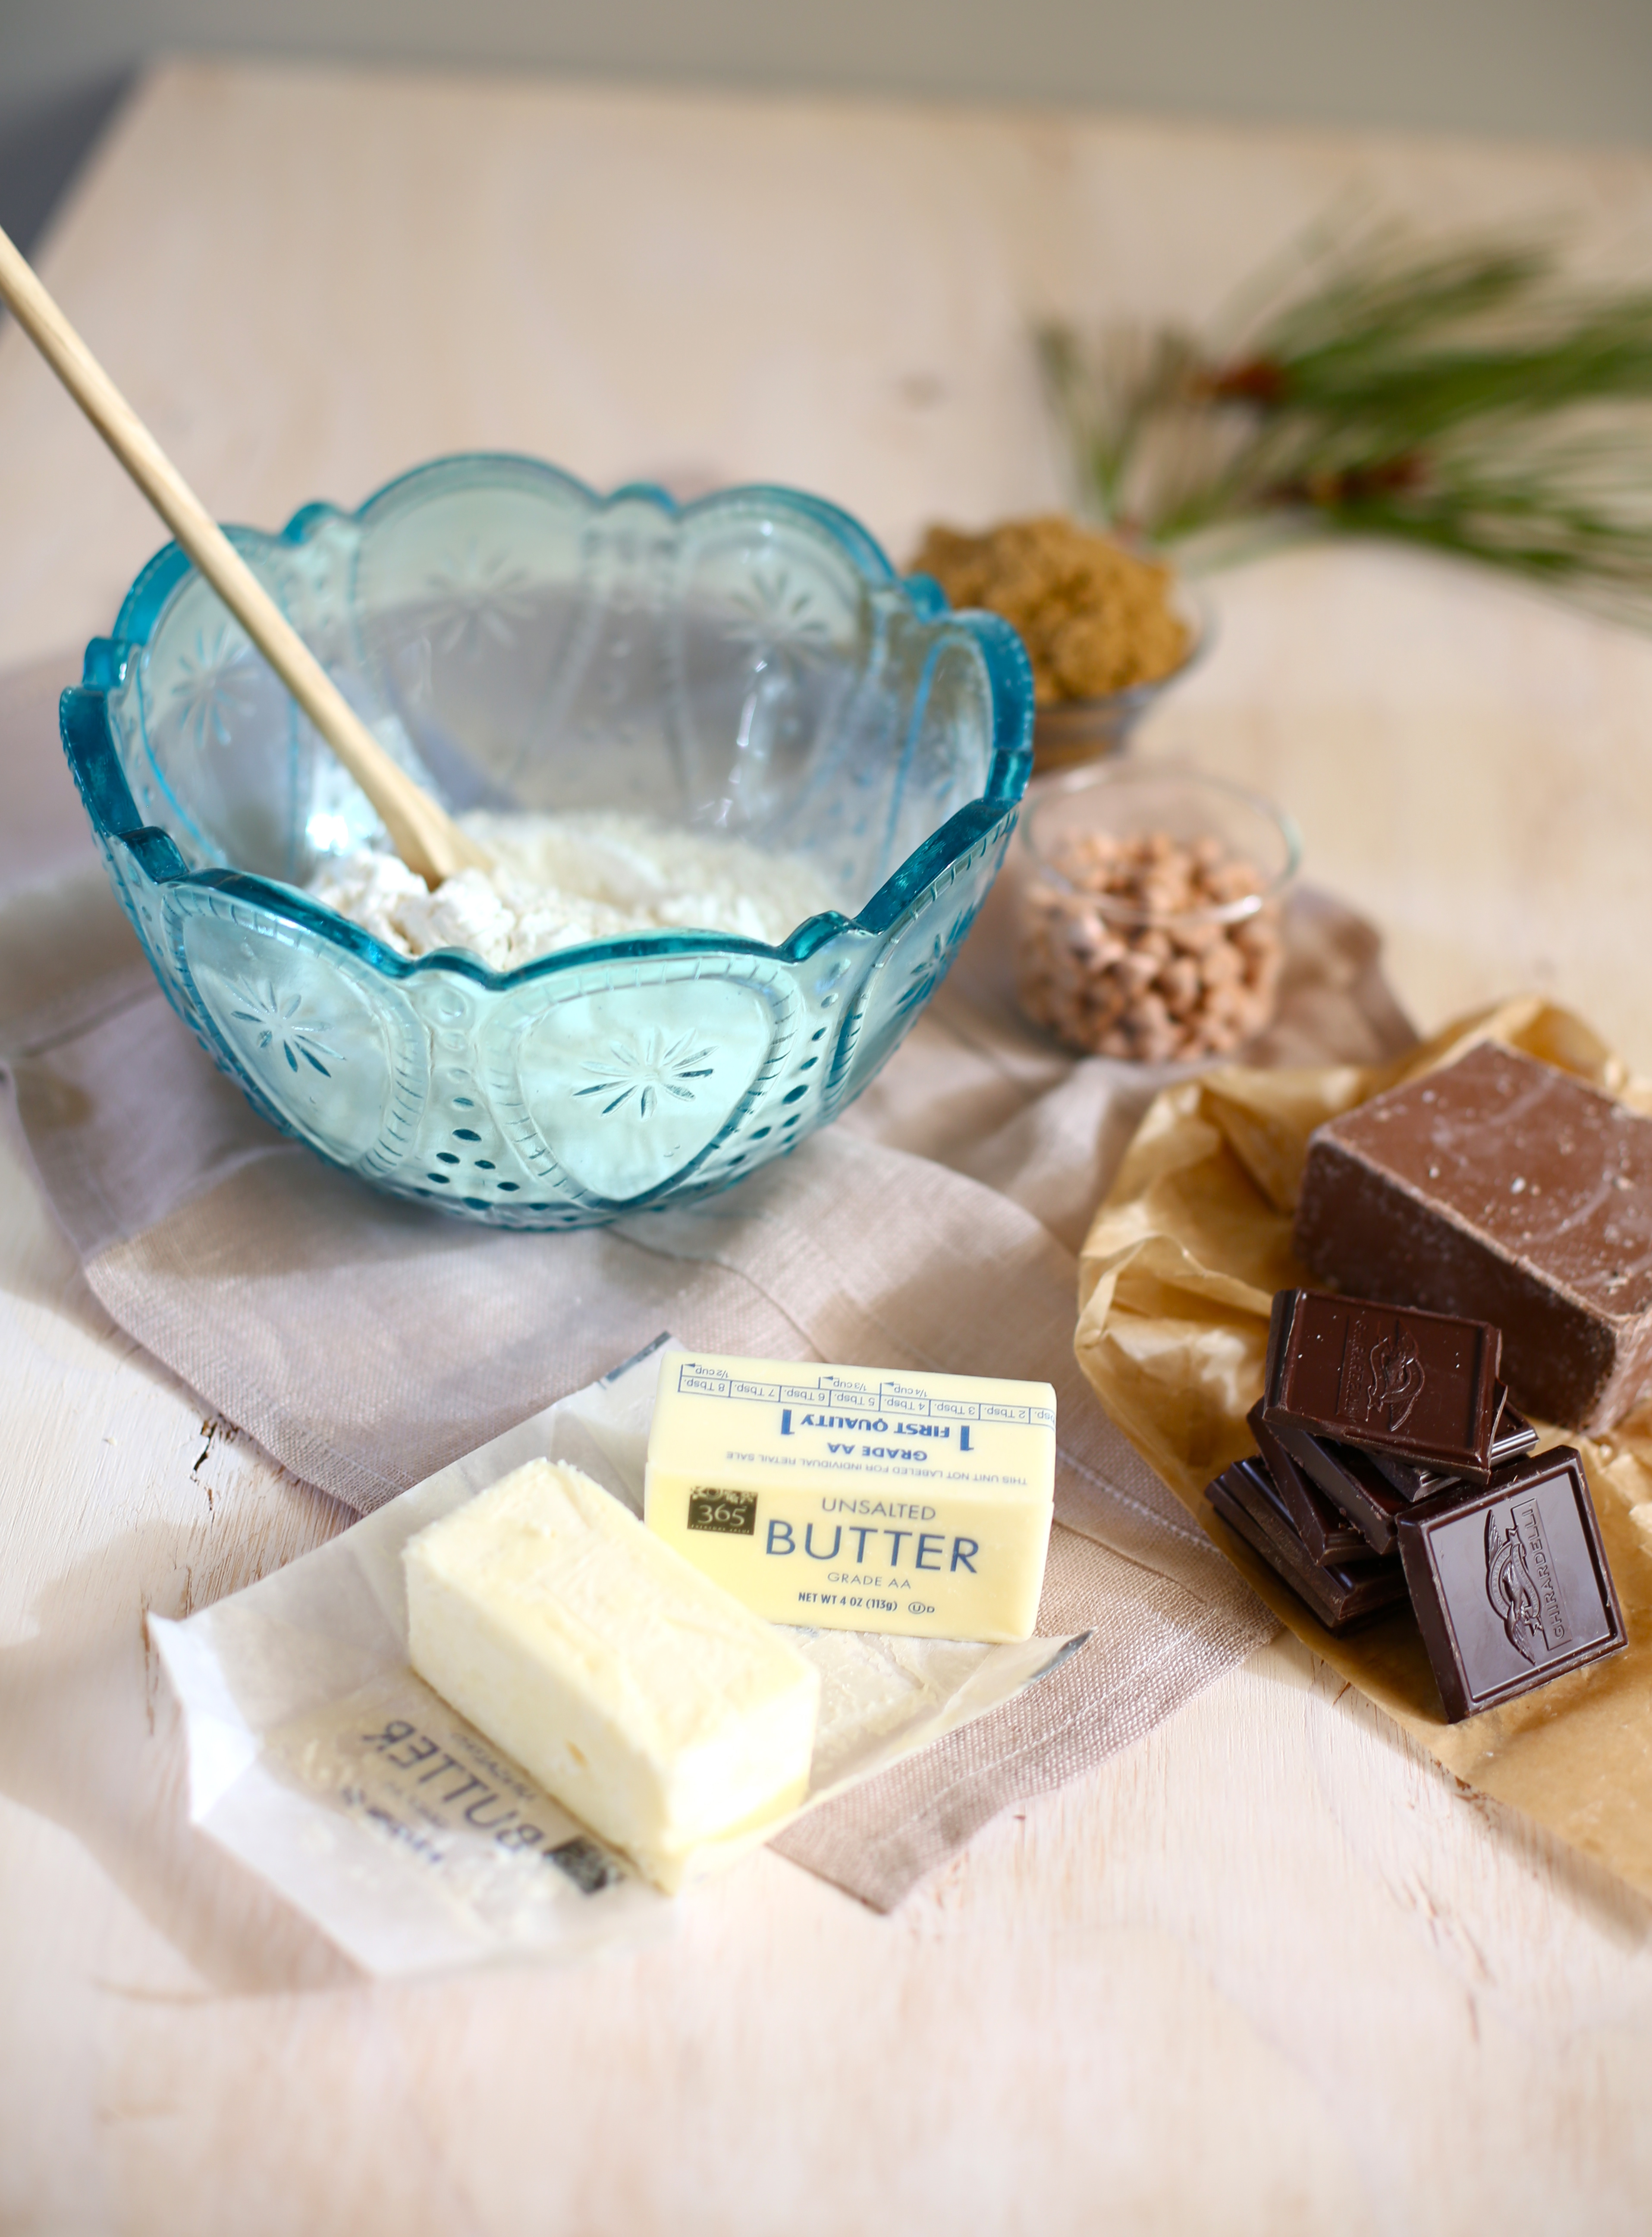 Ingredients for cookies on a table with a blue bowl, butter, chocolate and other ingredients